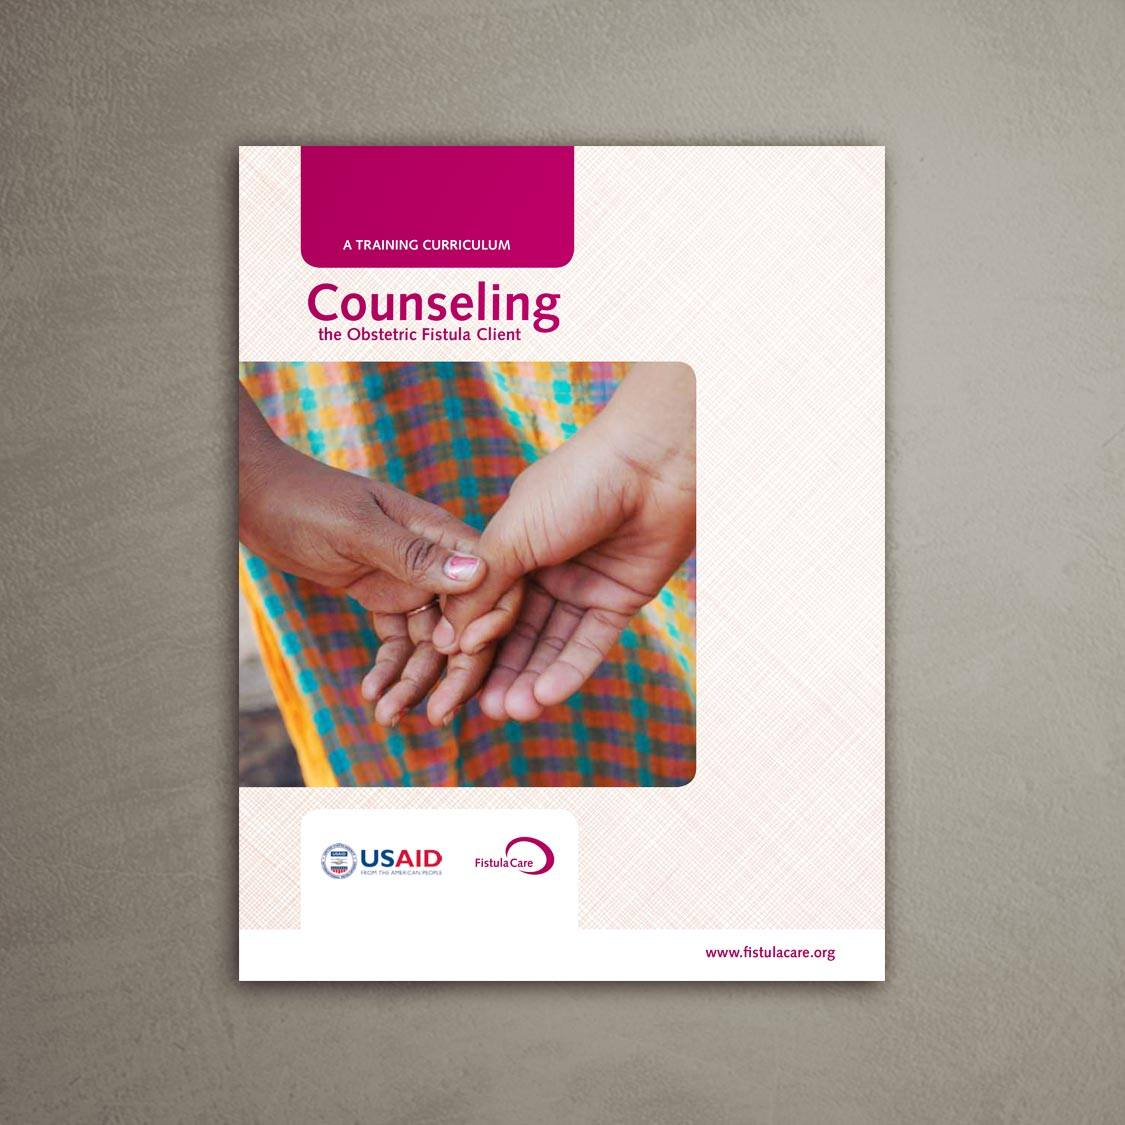 <b>Training curriculum</b> on counseling fistula clients